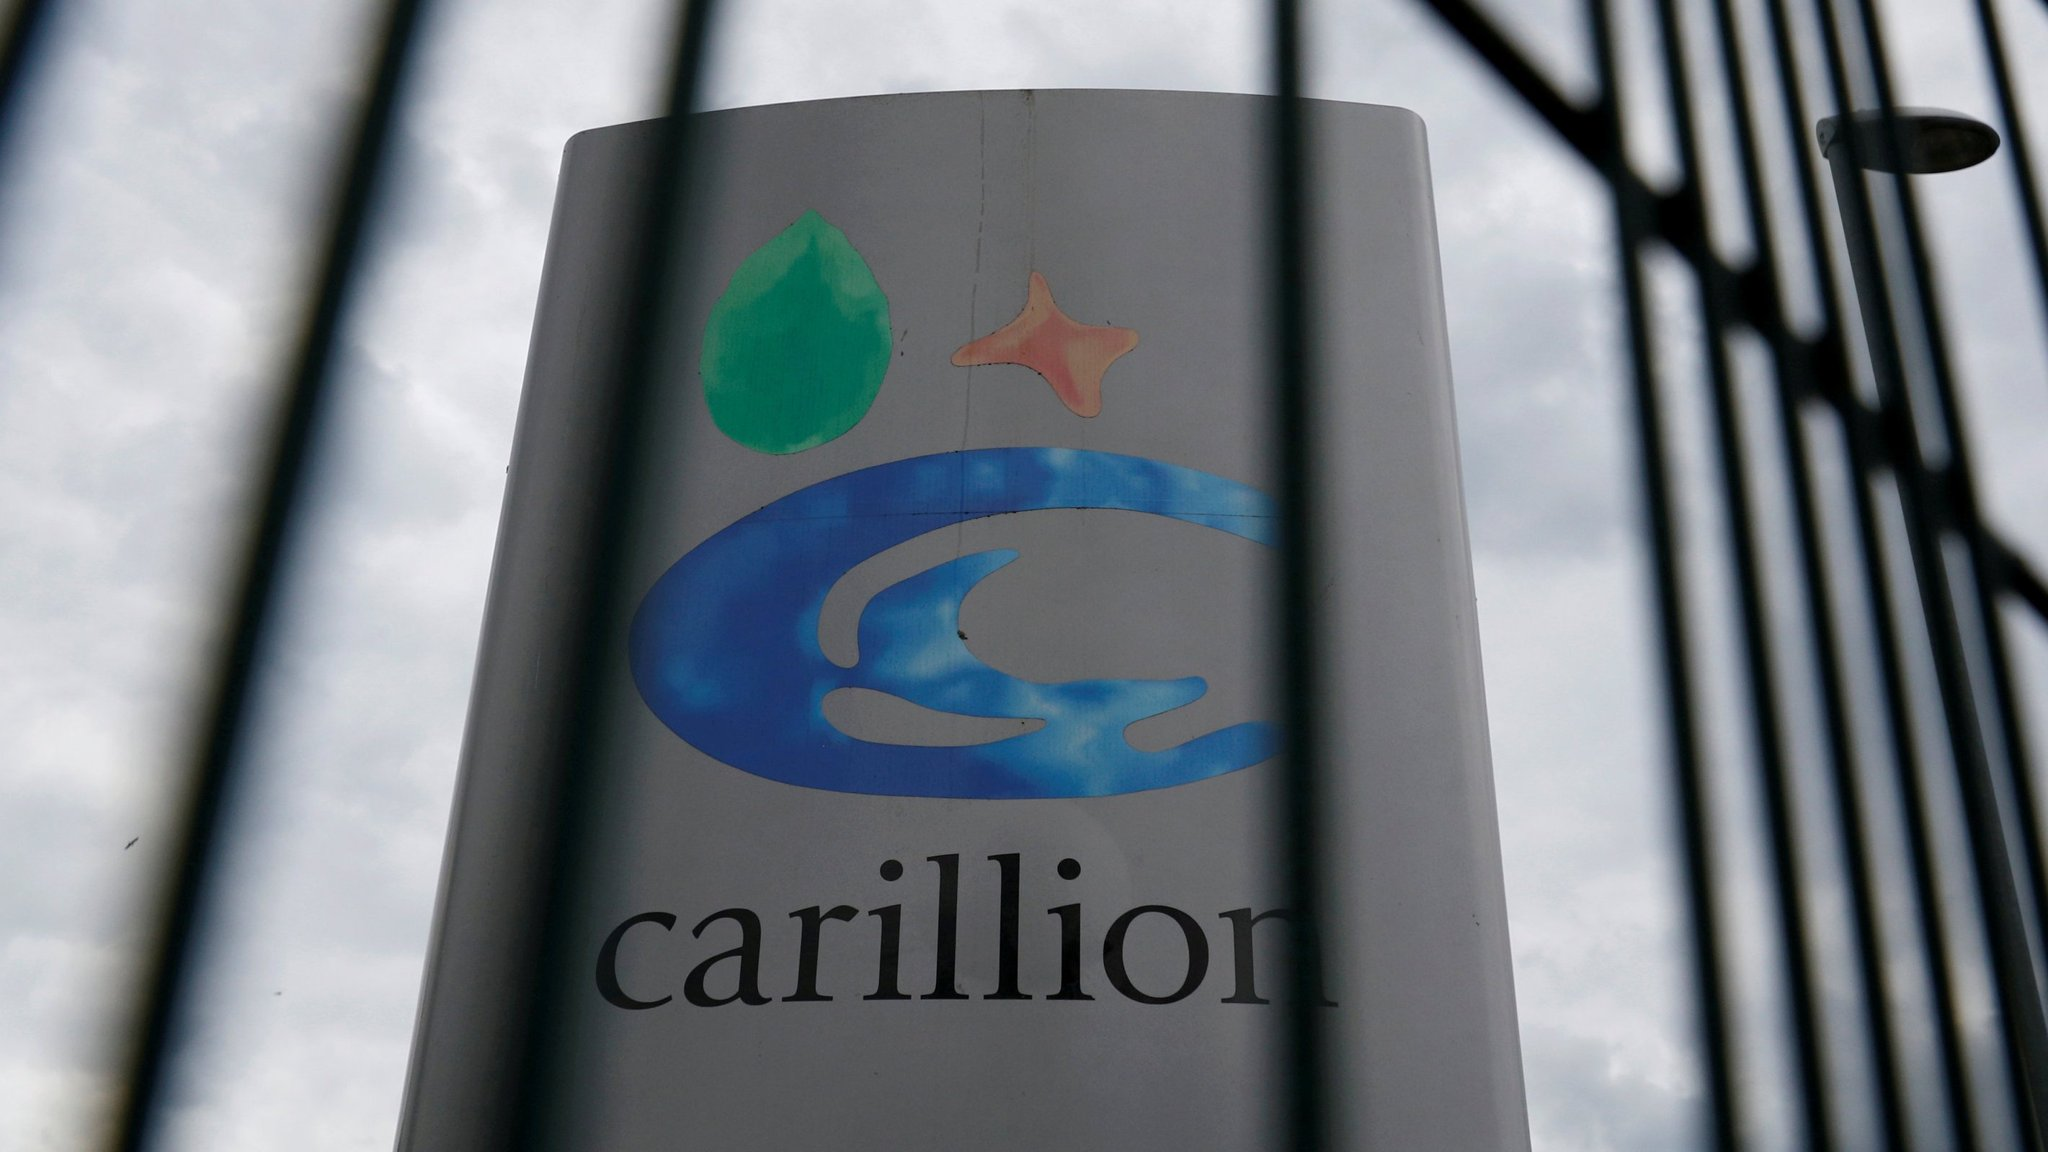 Why Carillion has gone into liquidation rather than administration